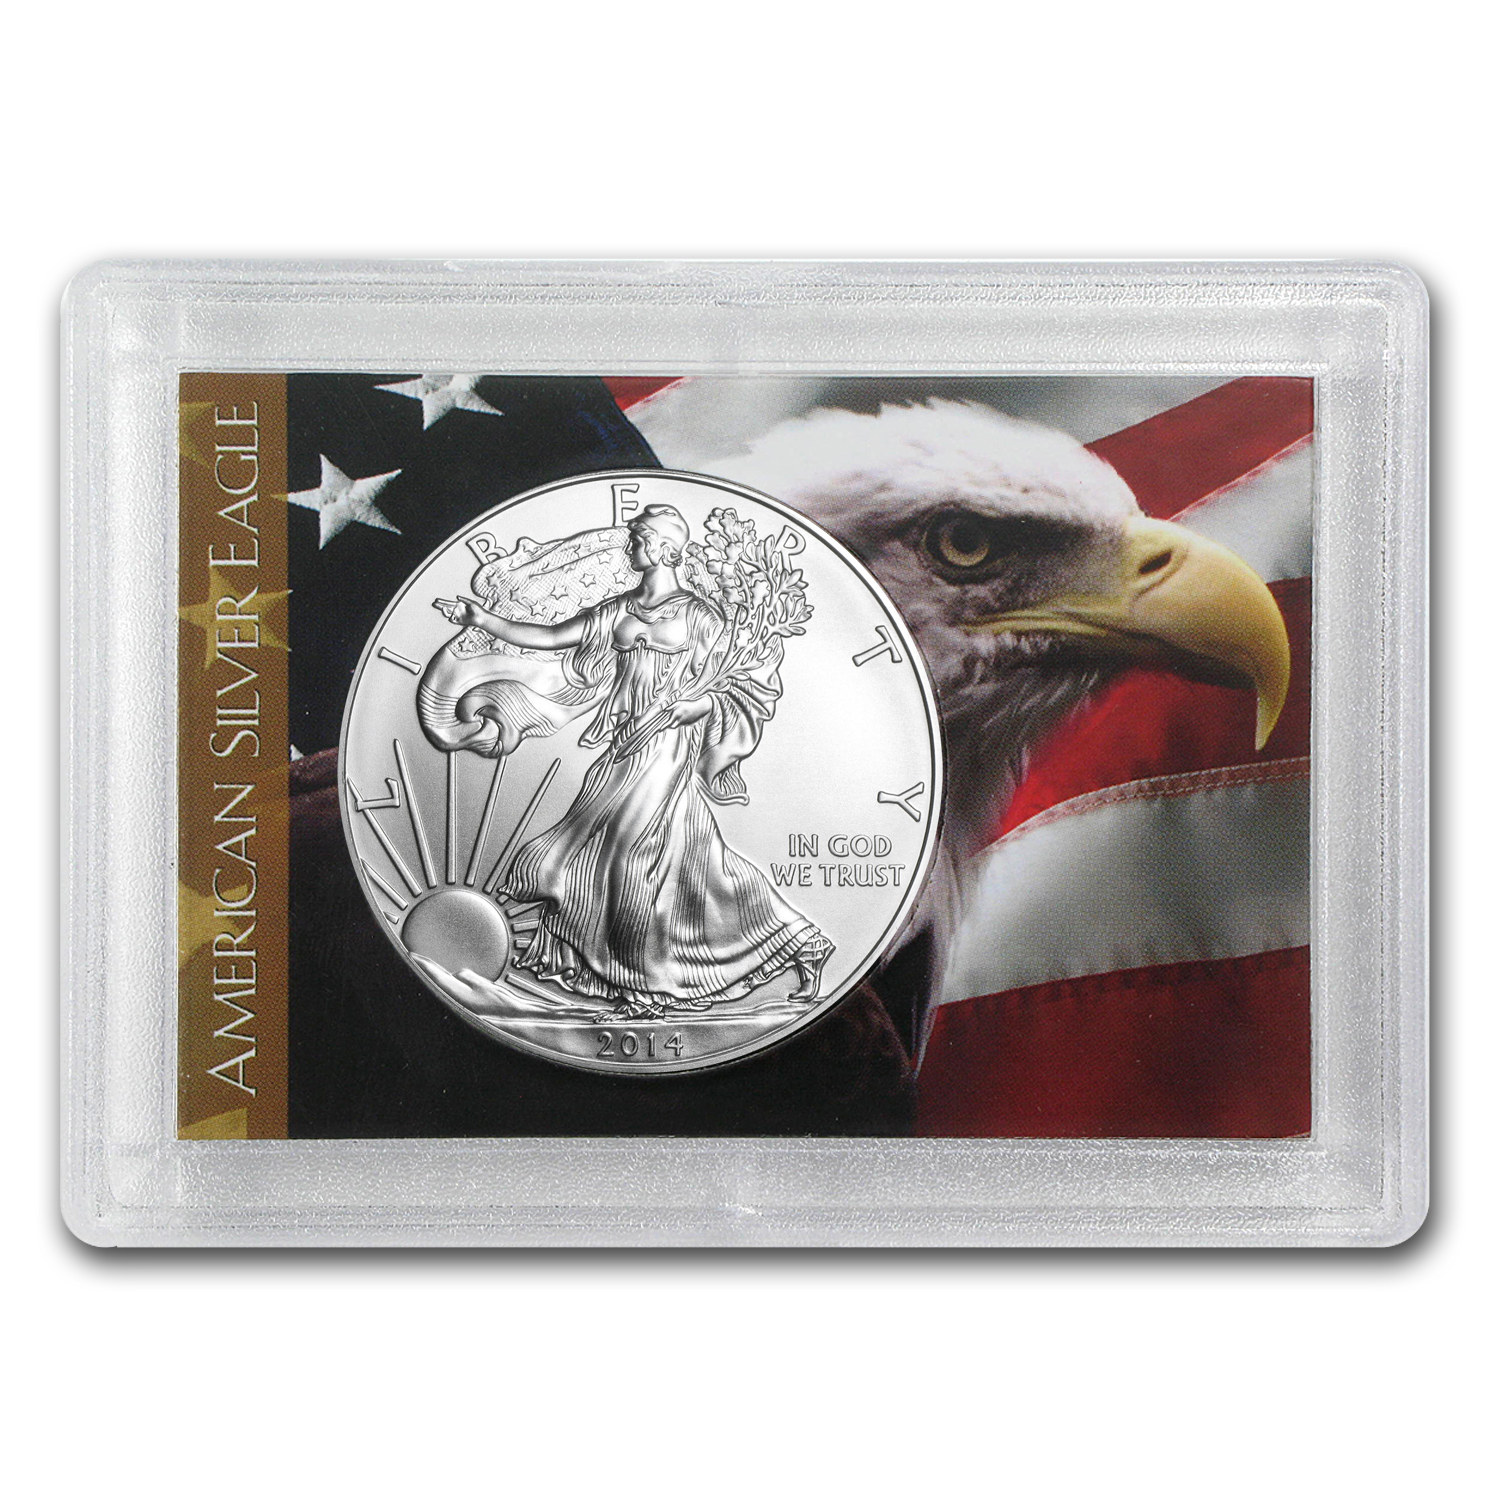 2014 1 oz Silver American Eagle (Flag/Eagle Design Harris Holder)